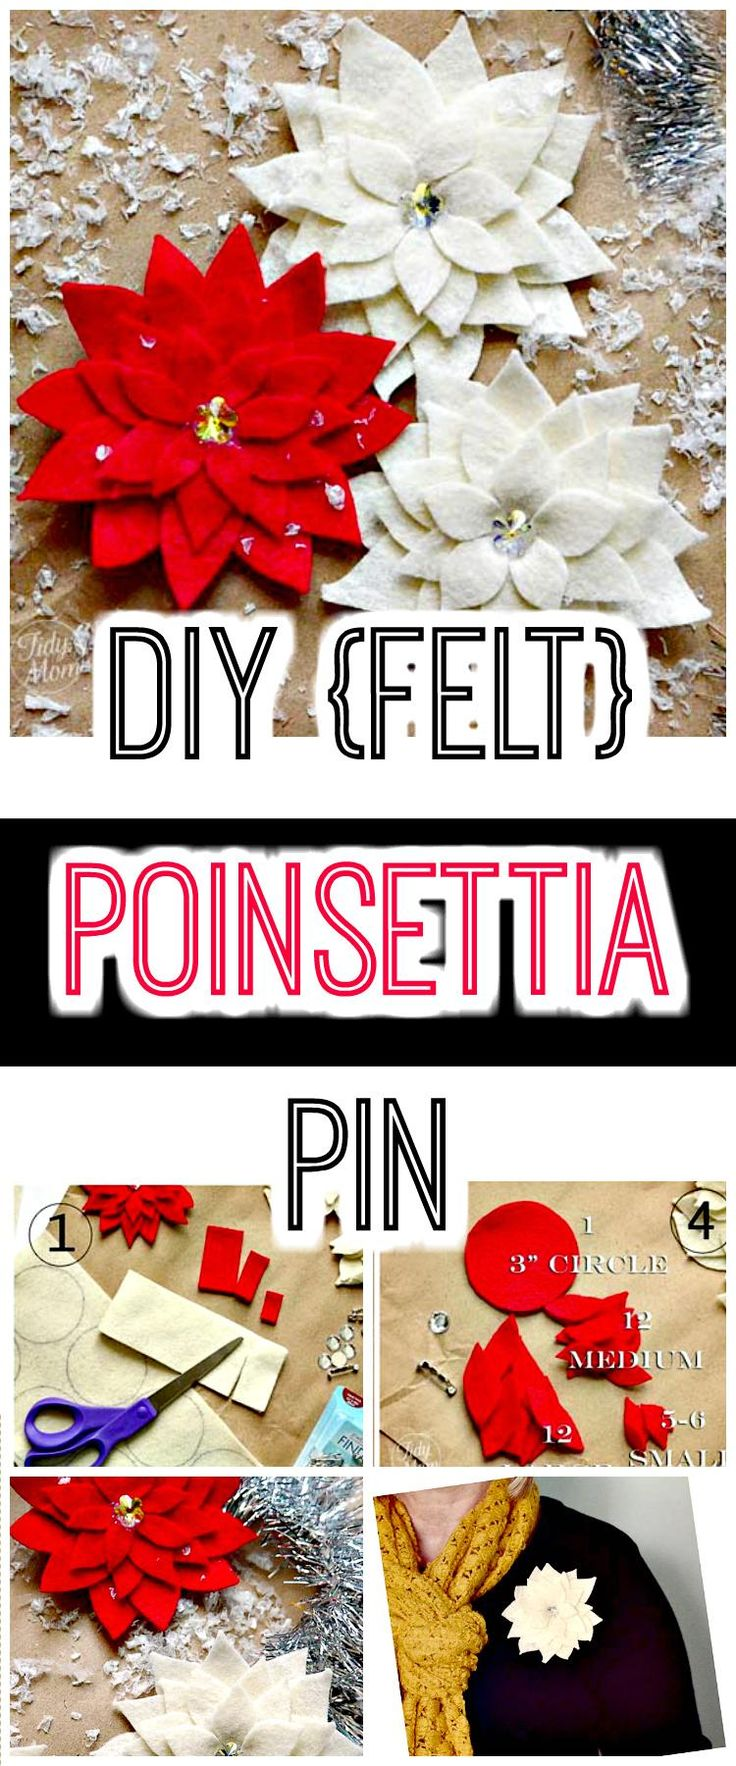 3 Easy Diy Storage Ideas For Small Kitchen: 25+ Best Ideas About Easy Fabric Flowers On Pinterest